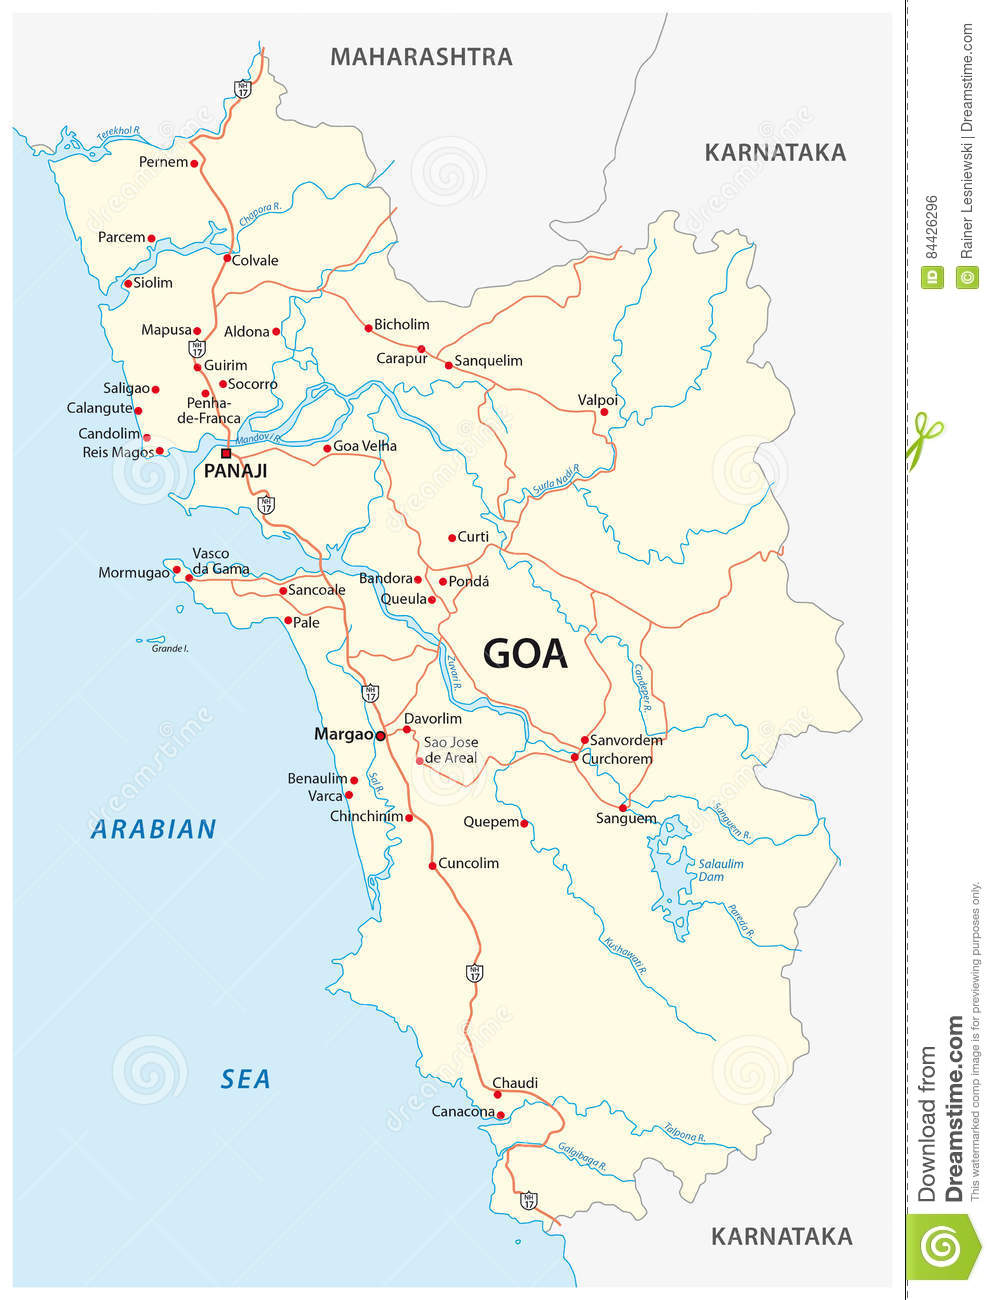 Road Map Of The Indian State Of Goa Stock Vector - Illustration of Indian State Border Map on rainbow states map, square states map, fort sumter map, school states map, border cities map, mid east states map, border region map, largest city map, coastal states map, nullification crisis map, maryland map, country states map, green states map, mexico before mexican-american war map, anaconda plan map, confederate states map, north states map, white states map, ukraine russia border map, bordering states map,